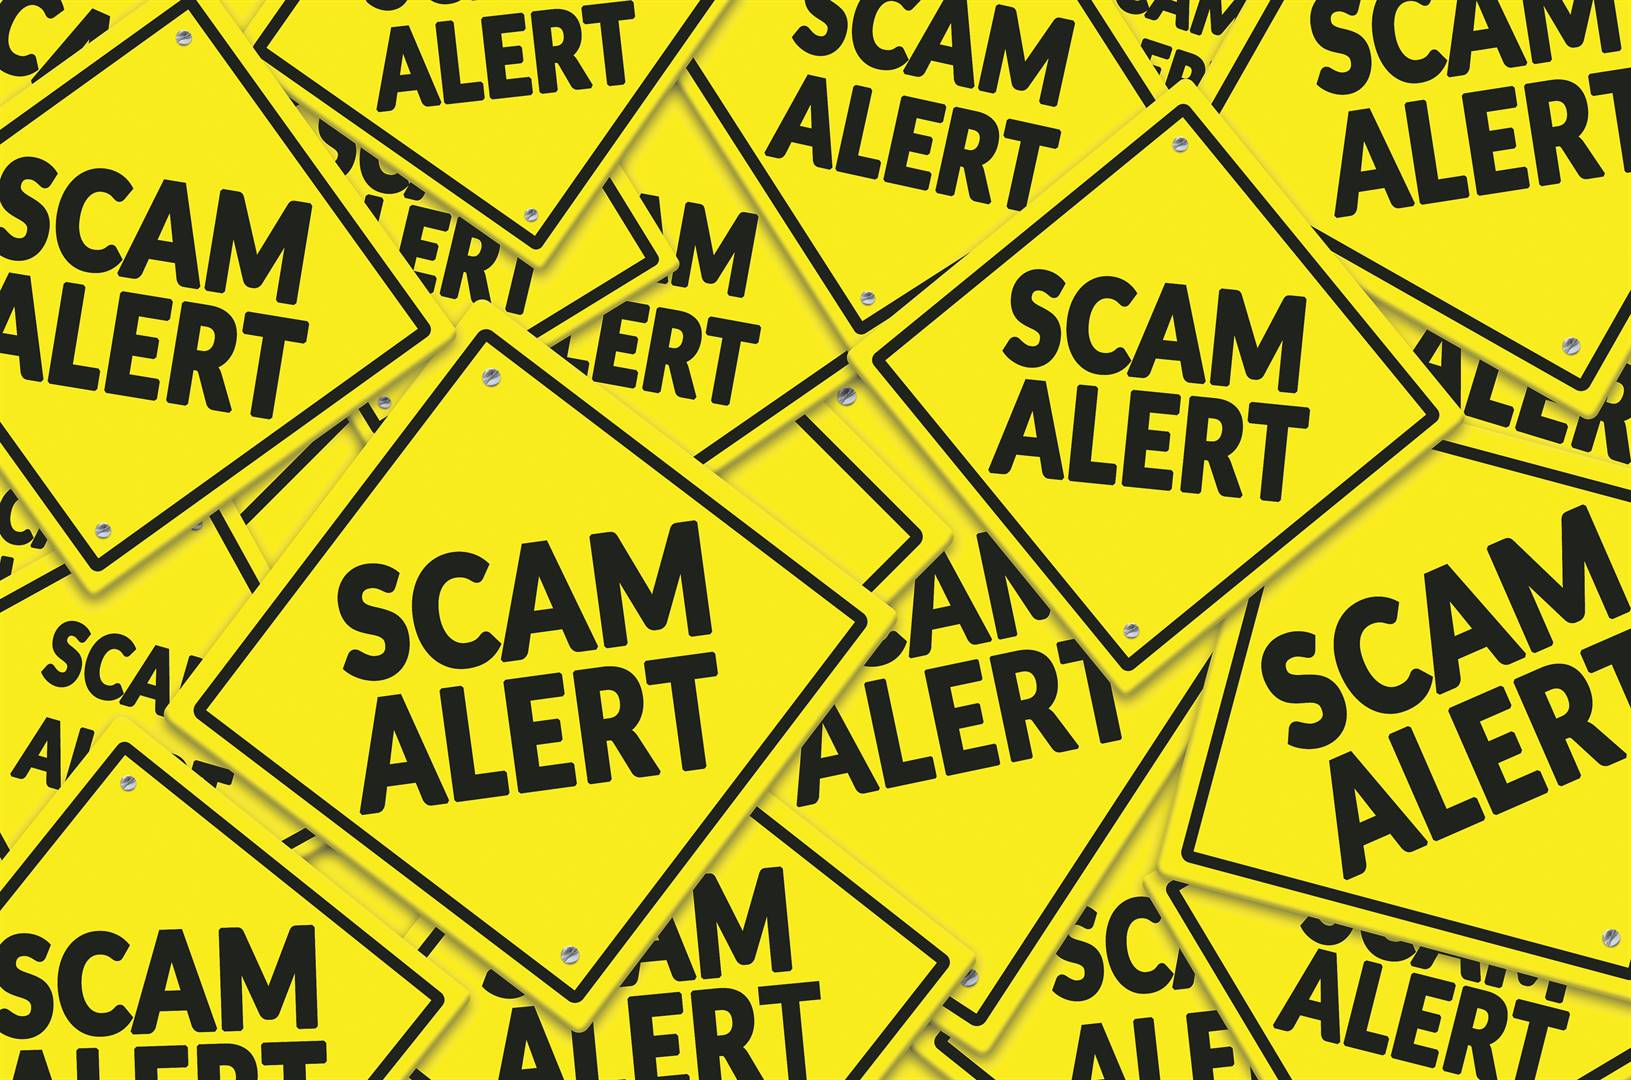 Watch out! The latest scam warnings